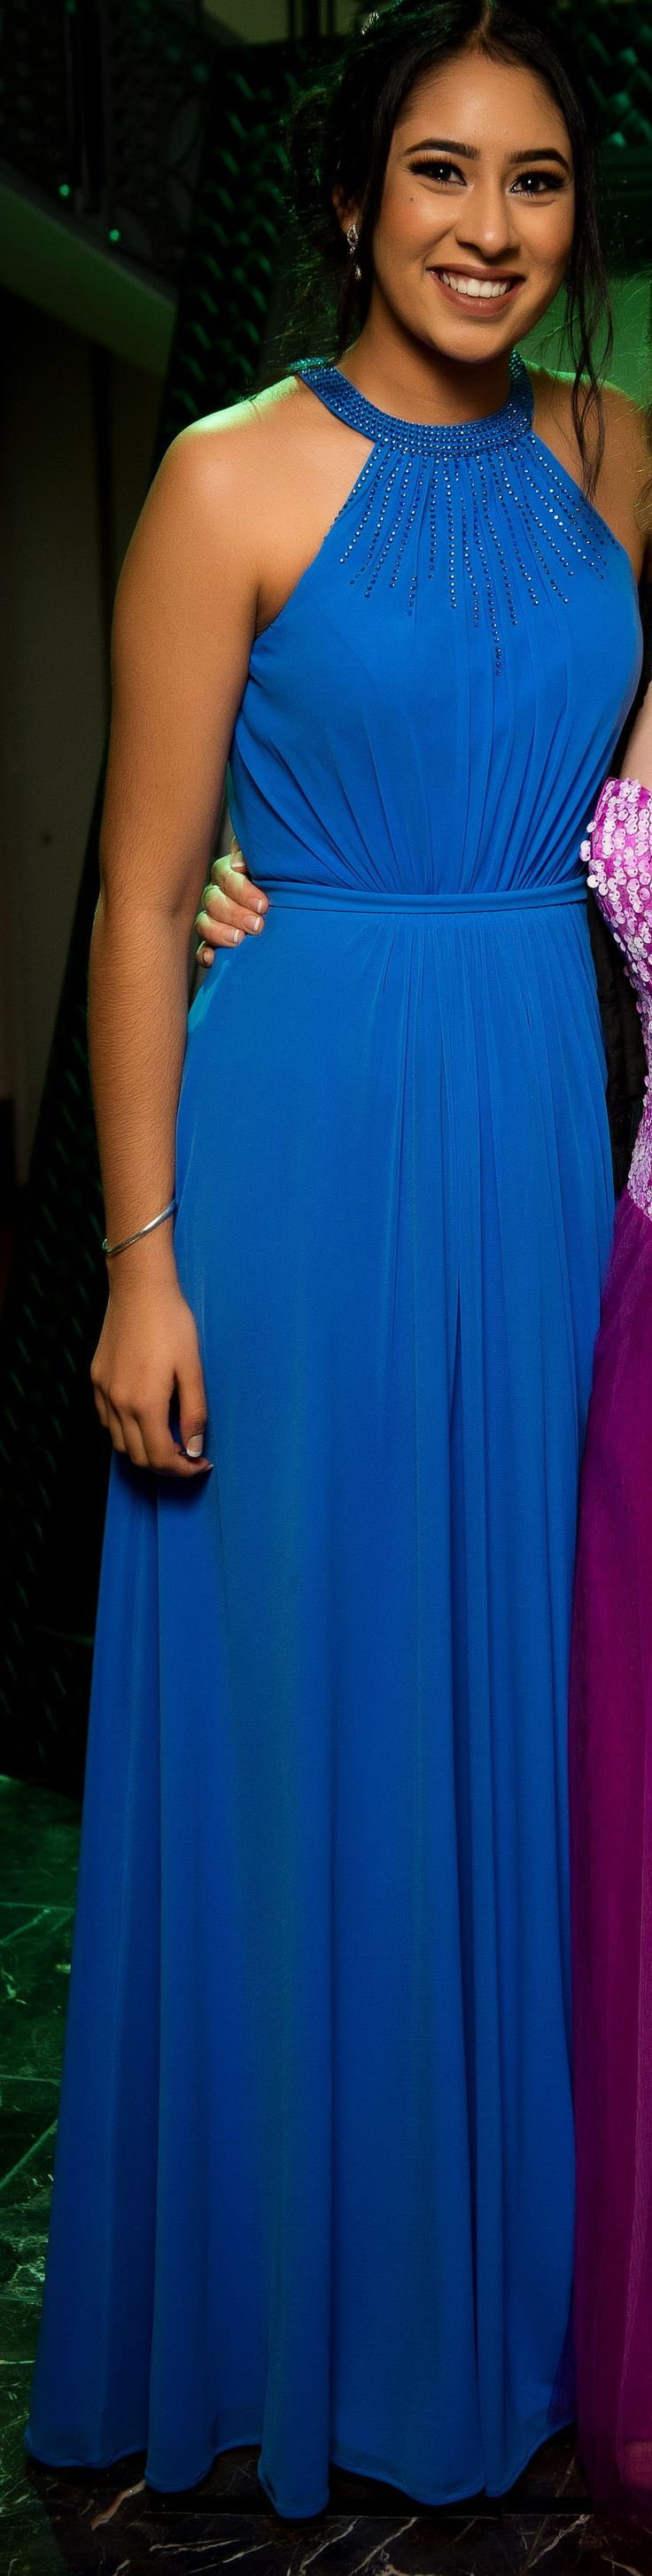 Strathallan College School Ball 2017. Love this shade of blue!